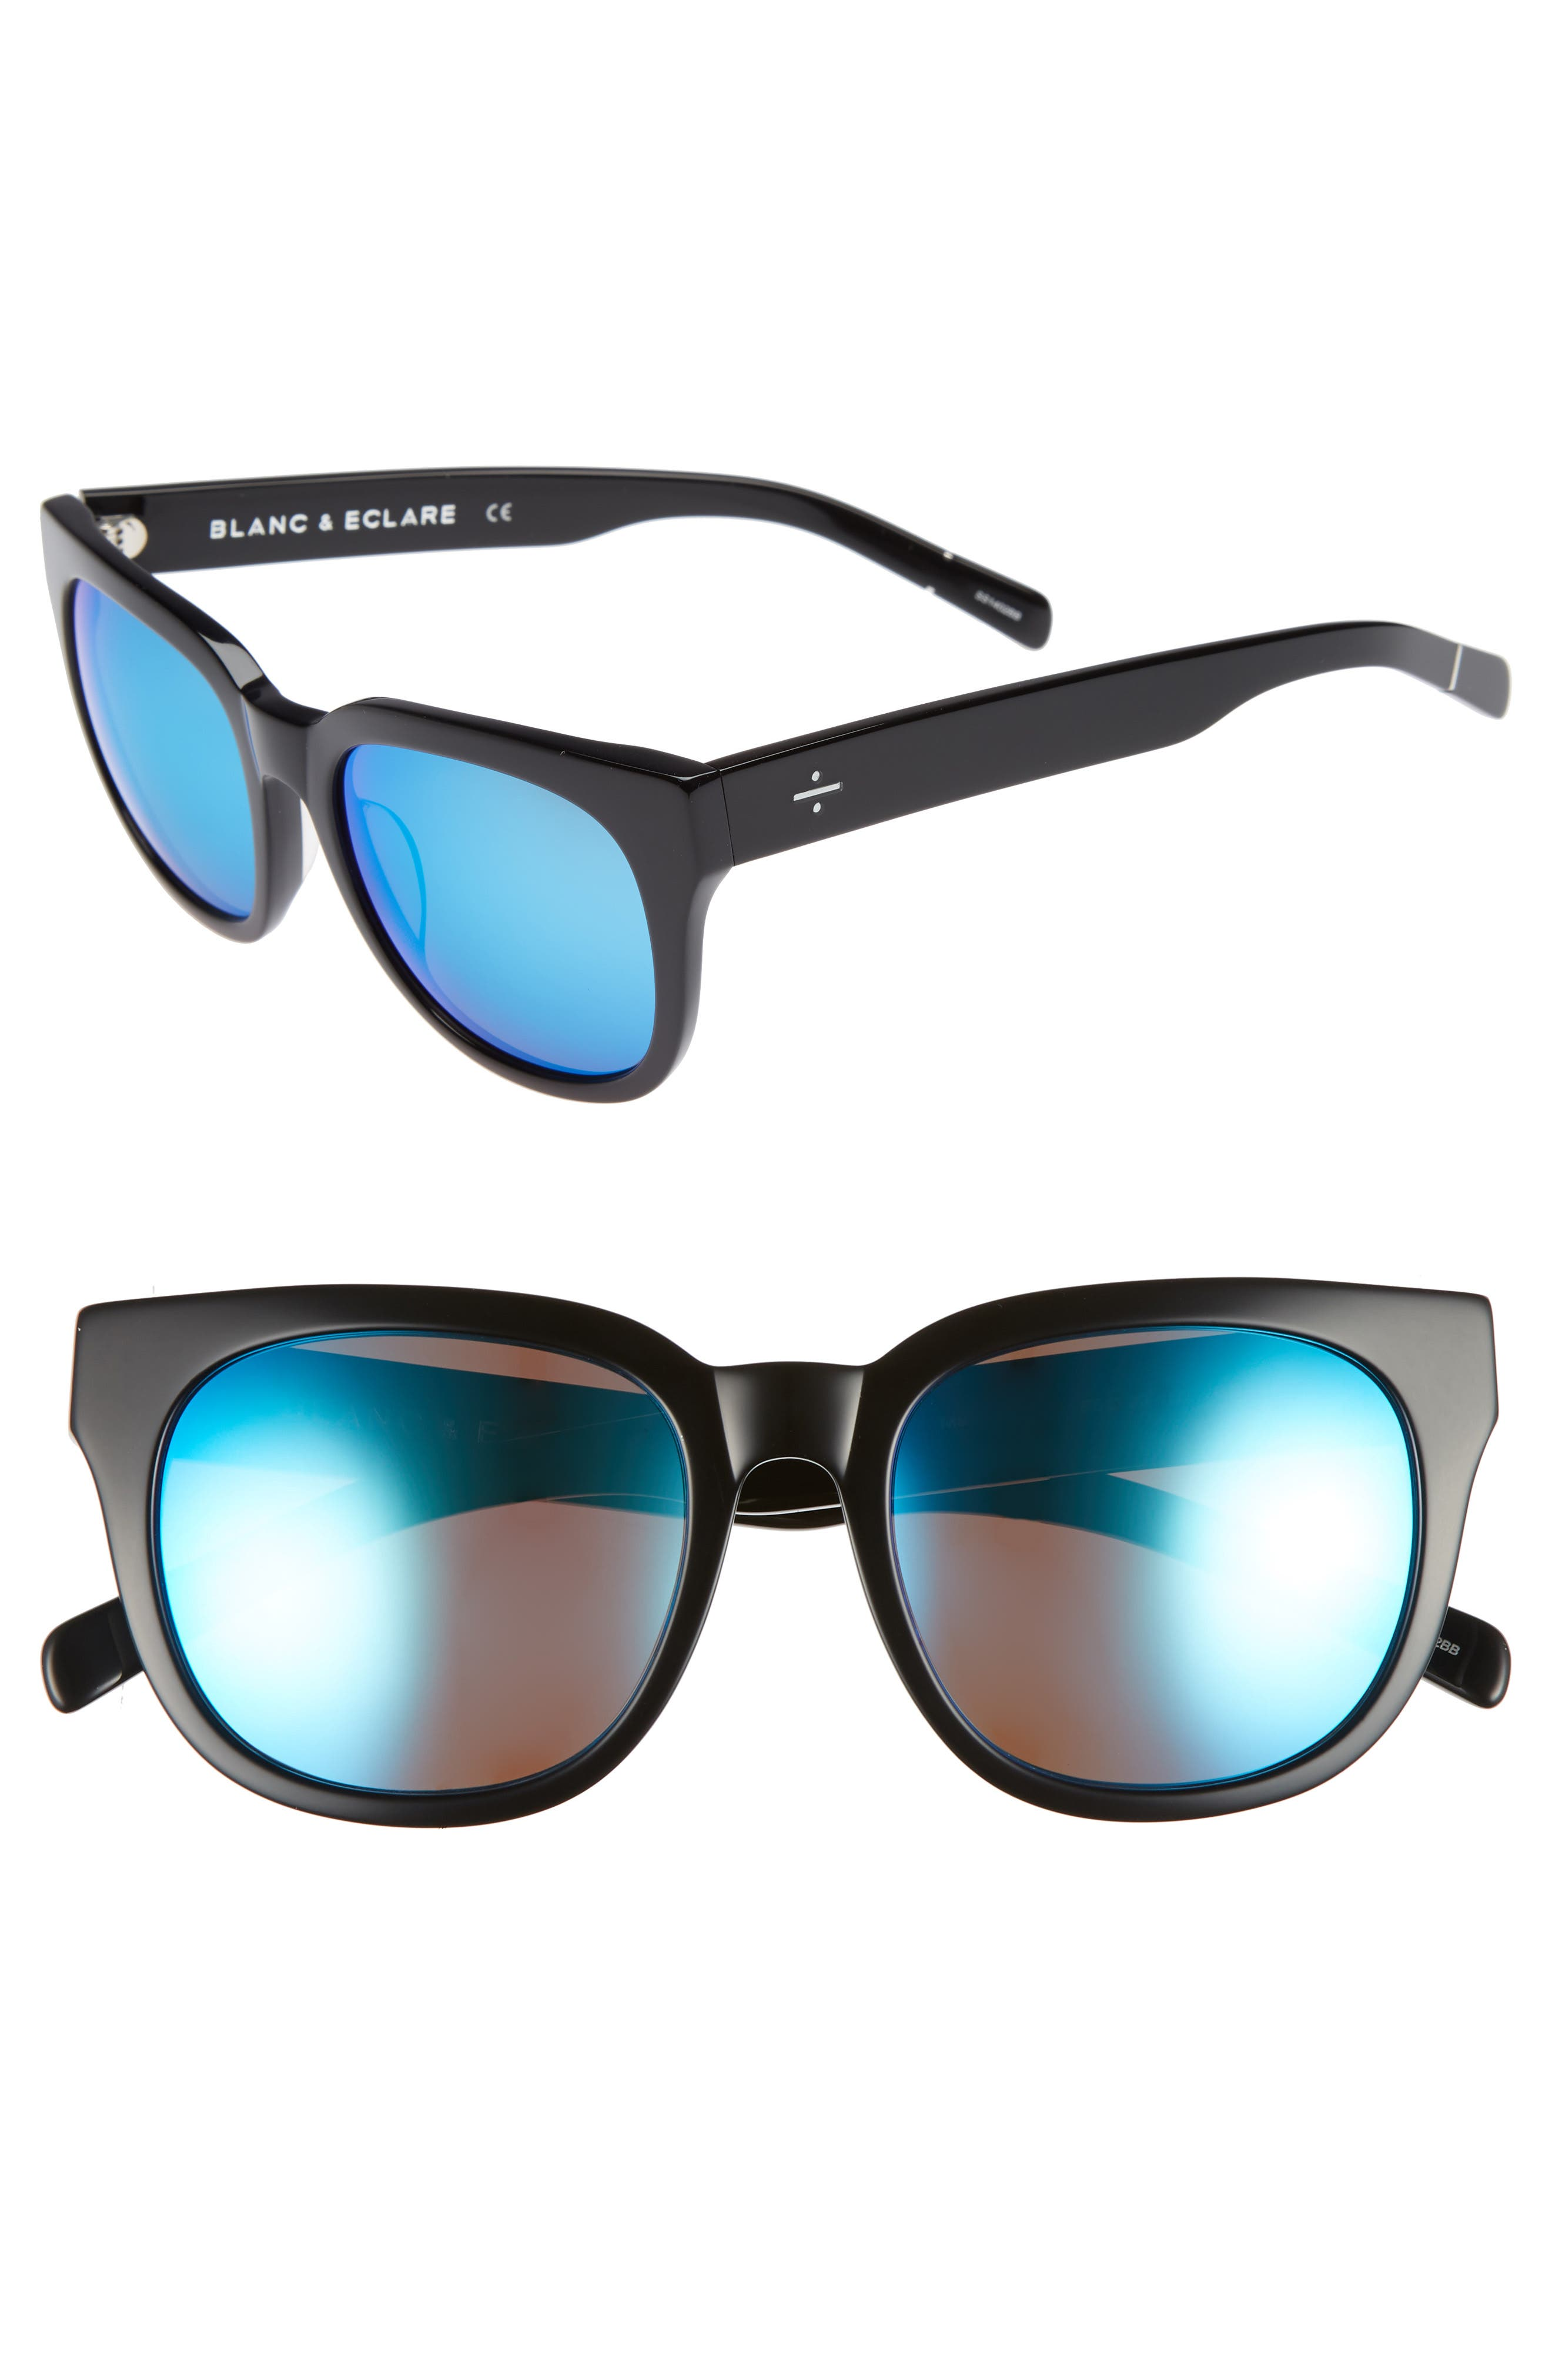 BLANC & ECLARE Seoul 55mm Polarized Sunglasses,                         Main,                         color, Black/ Blue Mirror